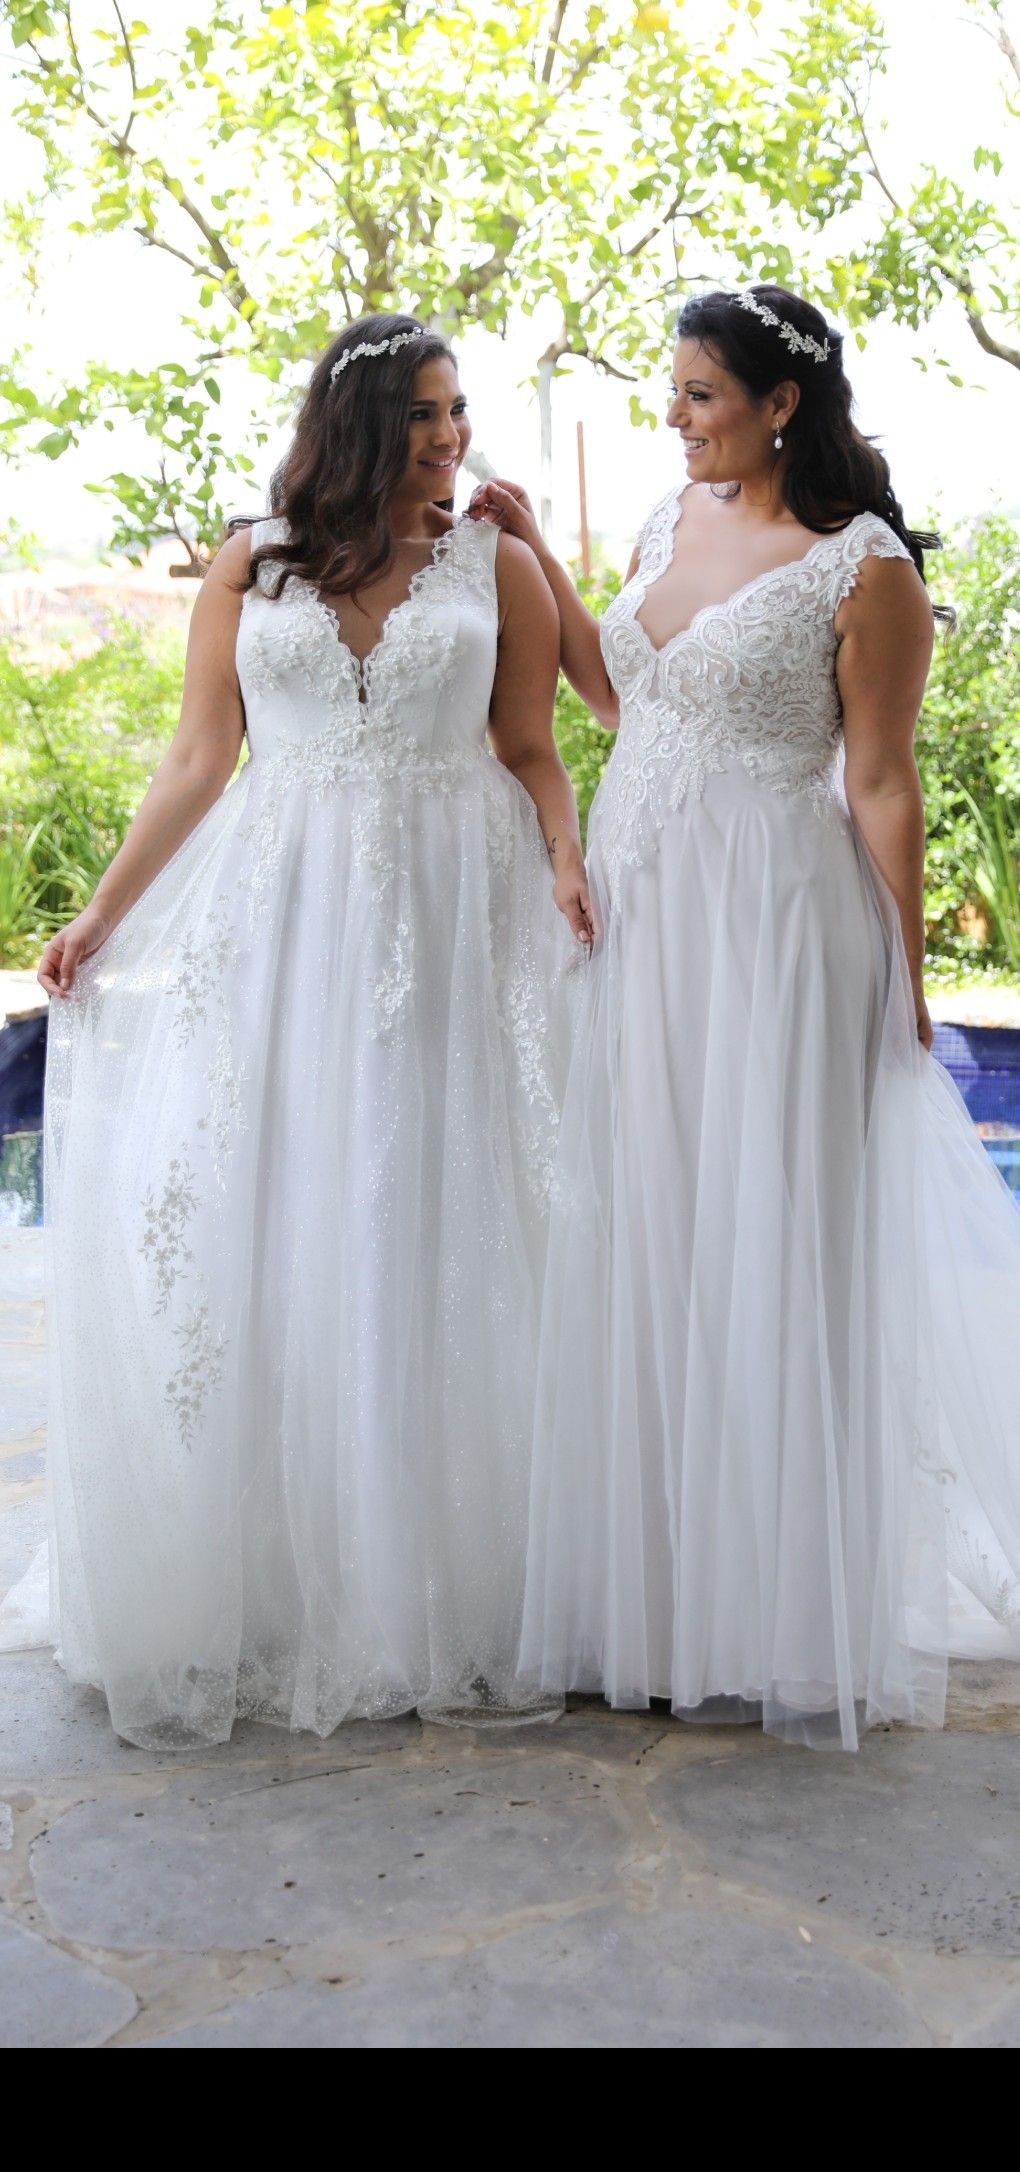 Stunning plus size wedding gowns from Studio Levana. Tracie and ...